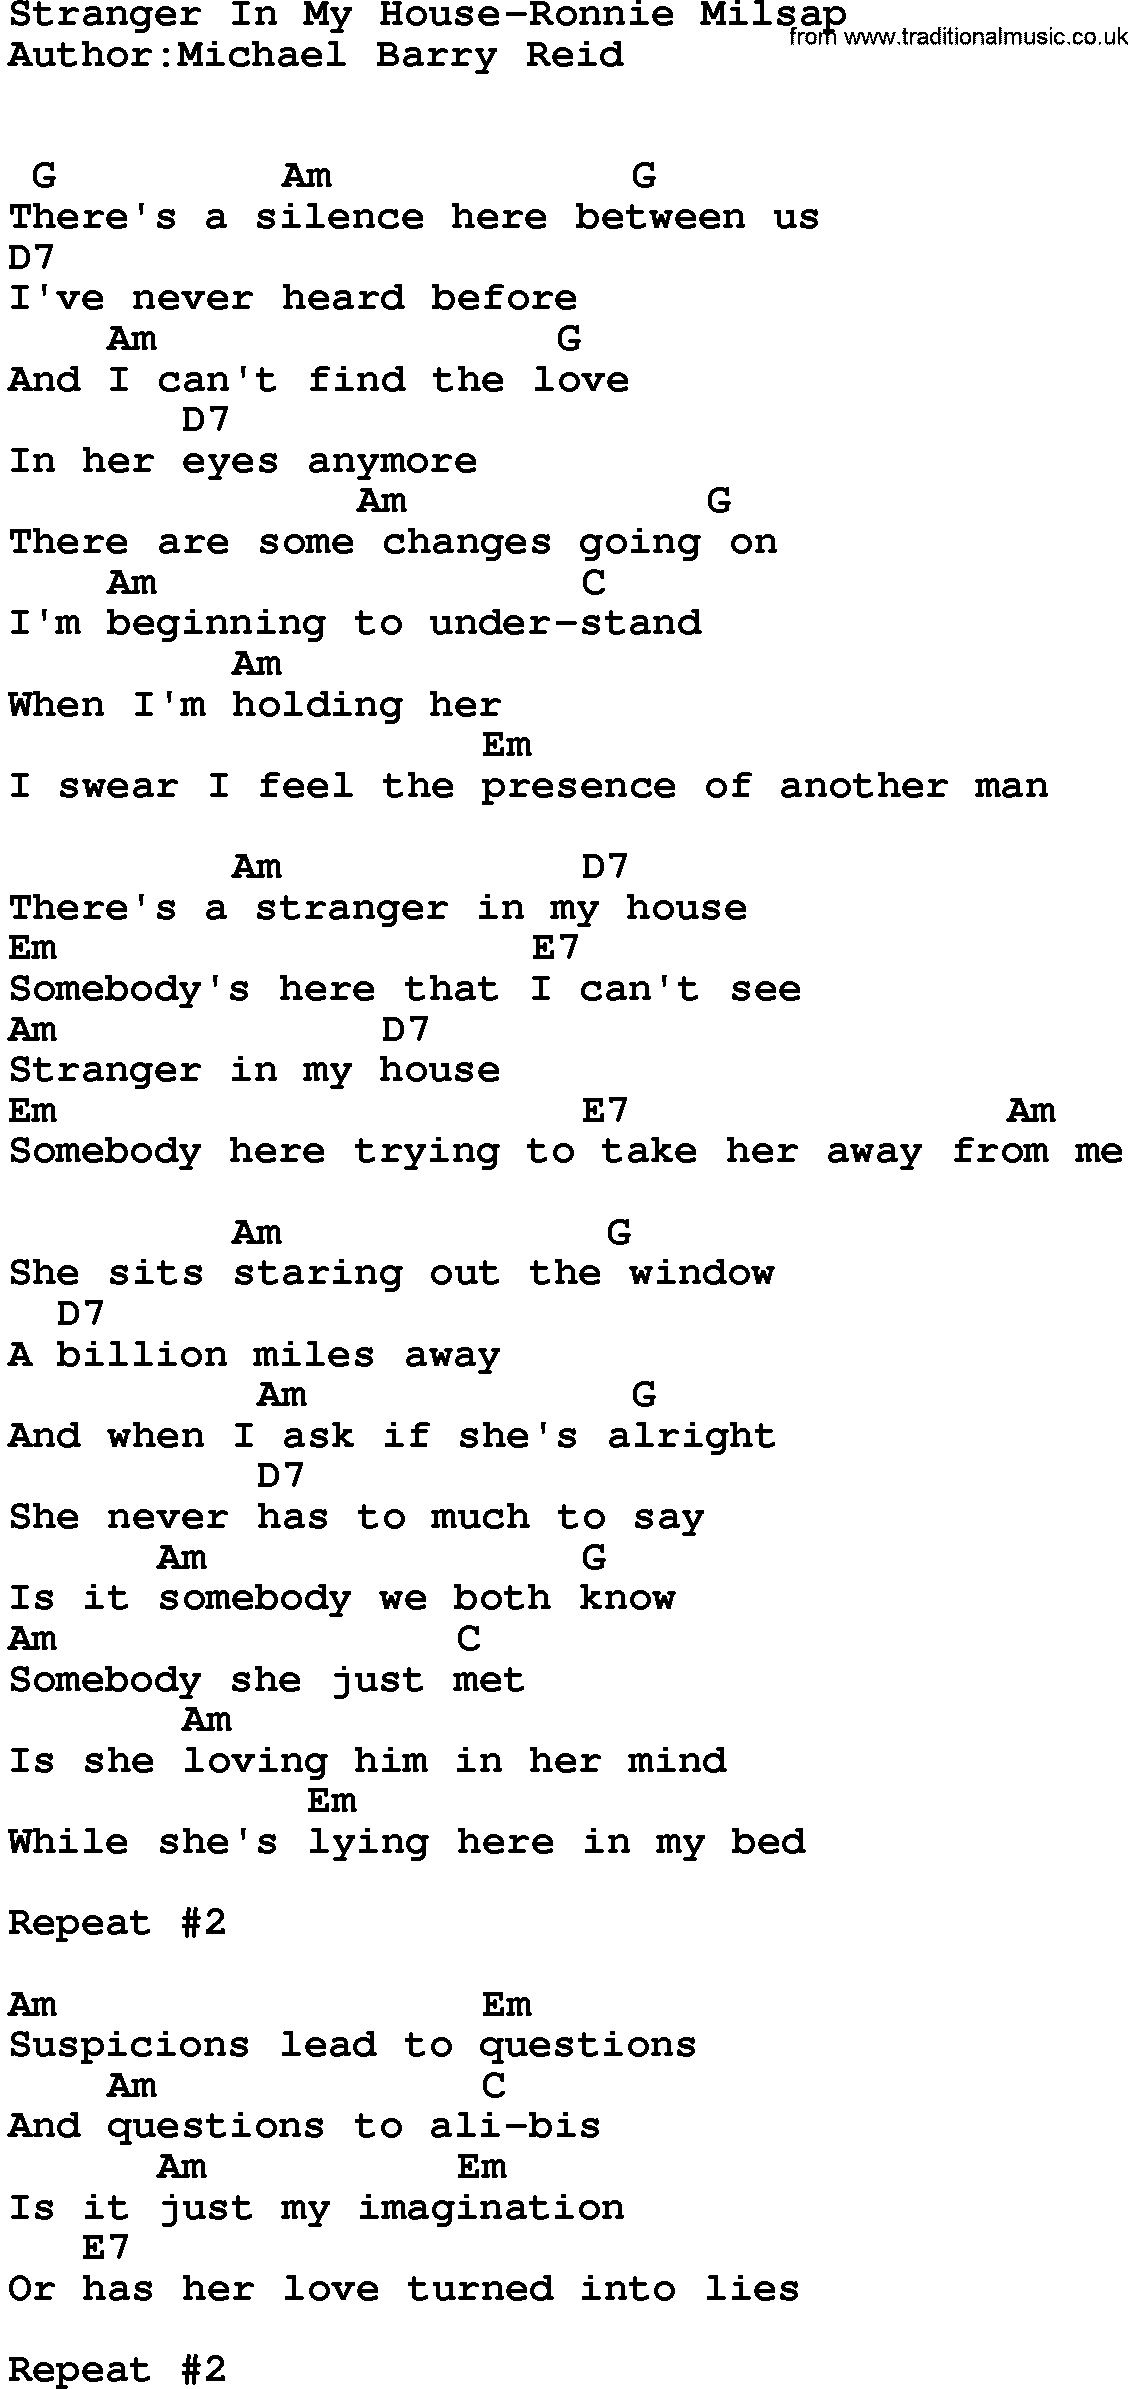 Country music stranger in my house ronnie milsap lyrics for Classic house chords